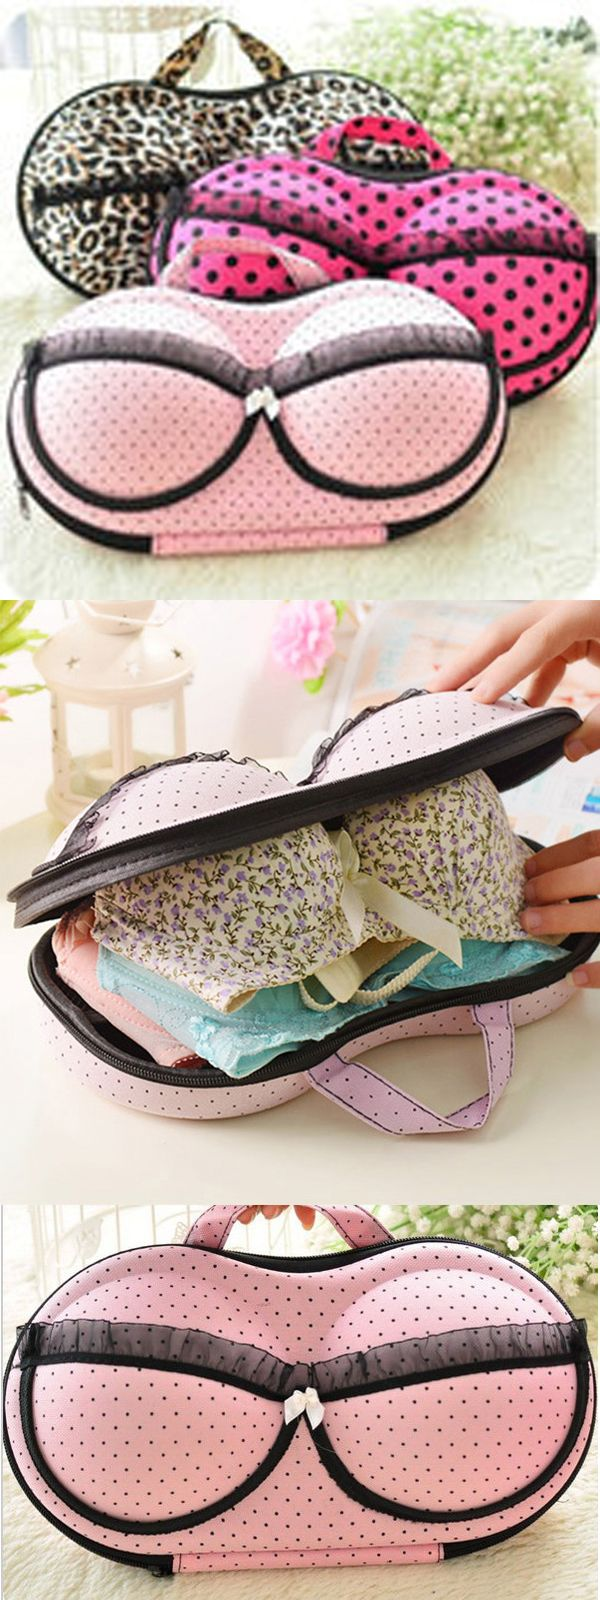 US$7.67 Large Capacity Creative Bra Underwear Storage Box Travel Portable Organizer Bags 32cm #newchic#storage#home#giftidea